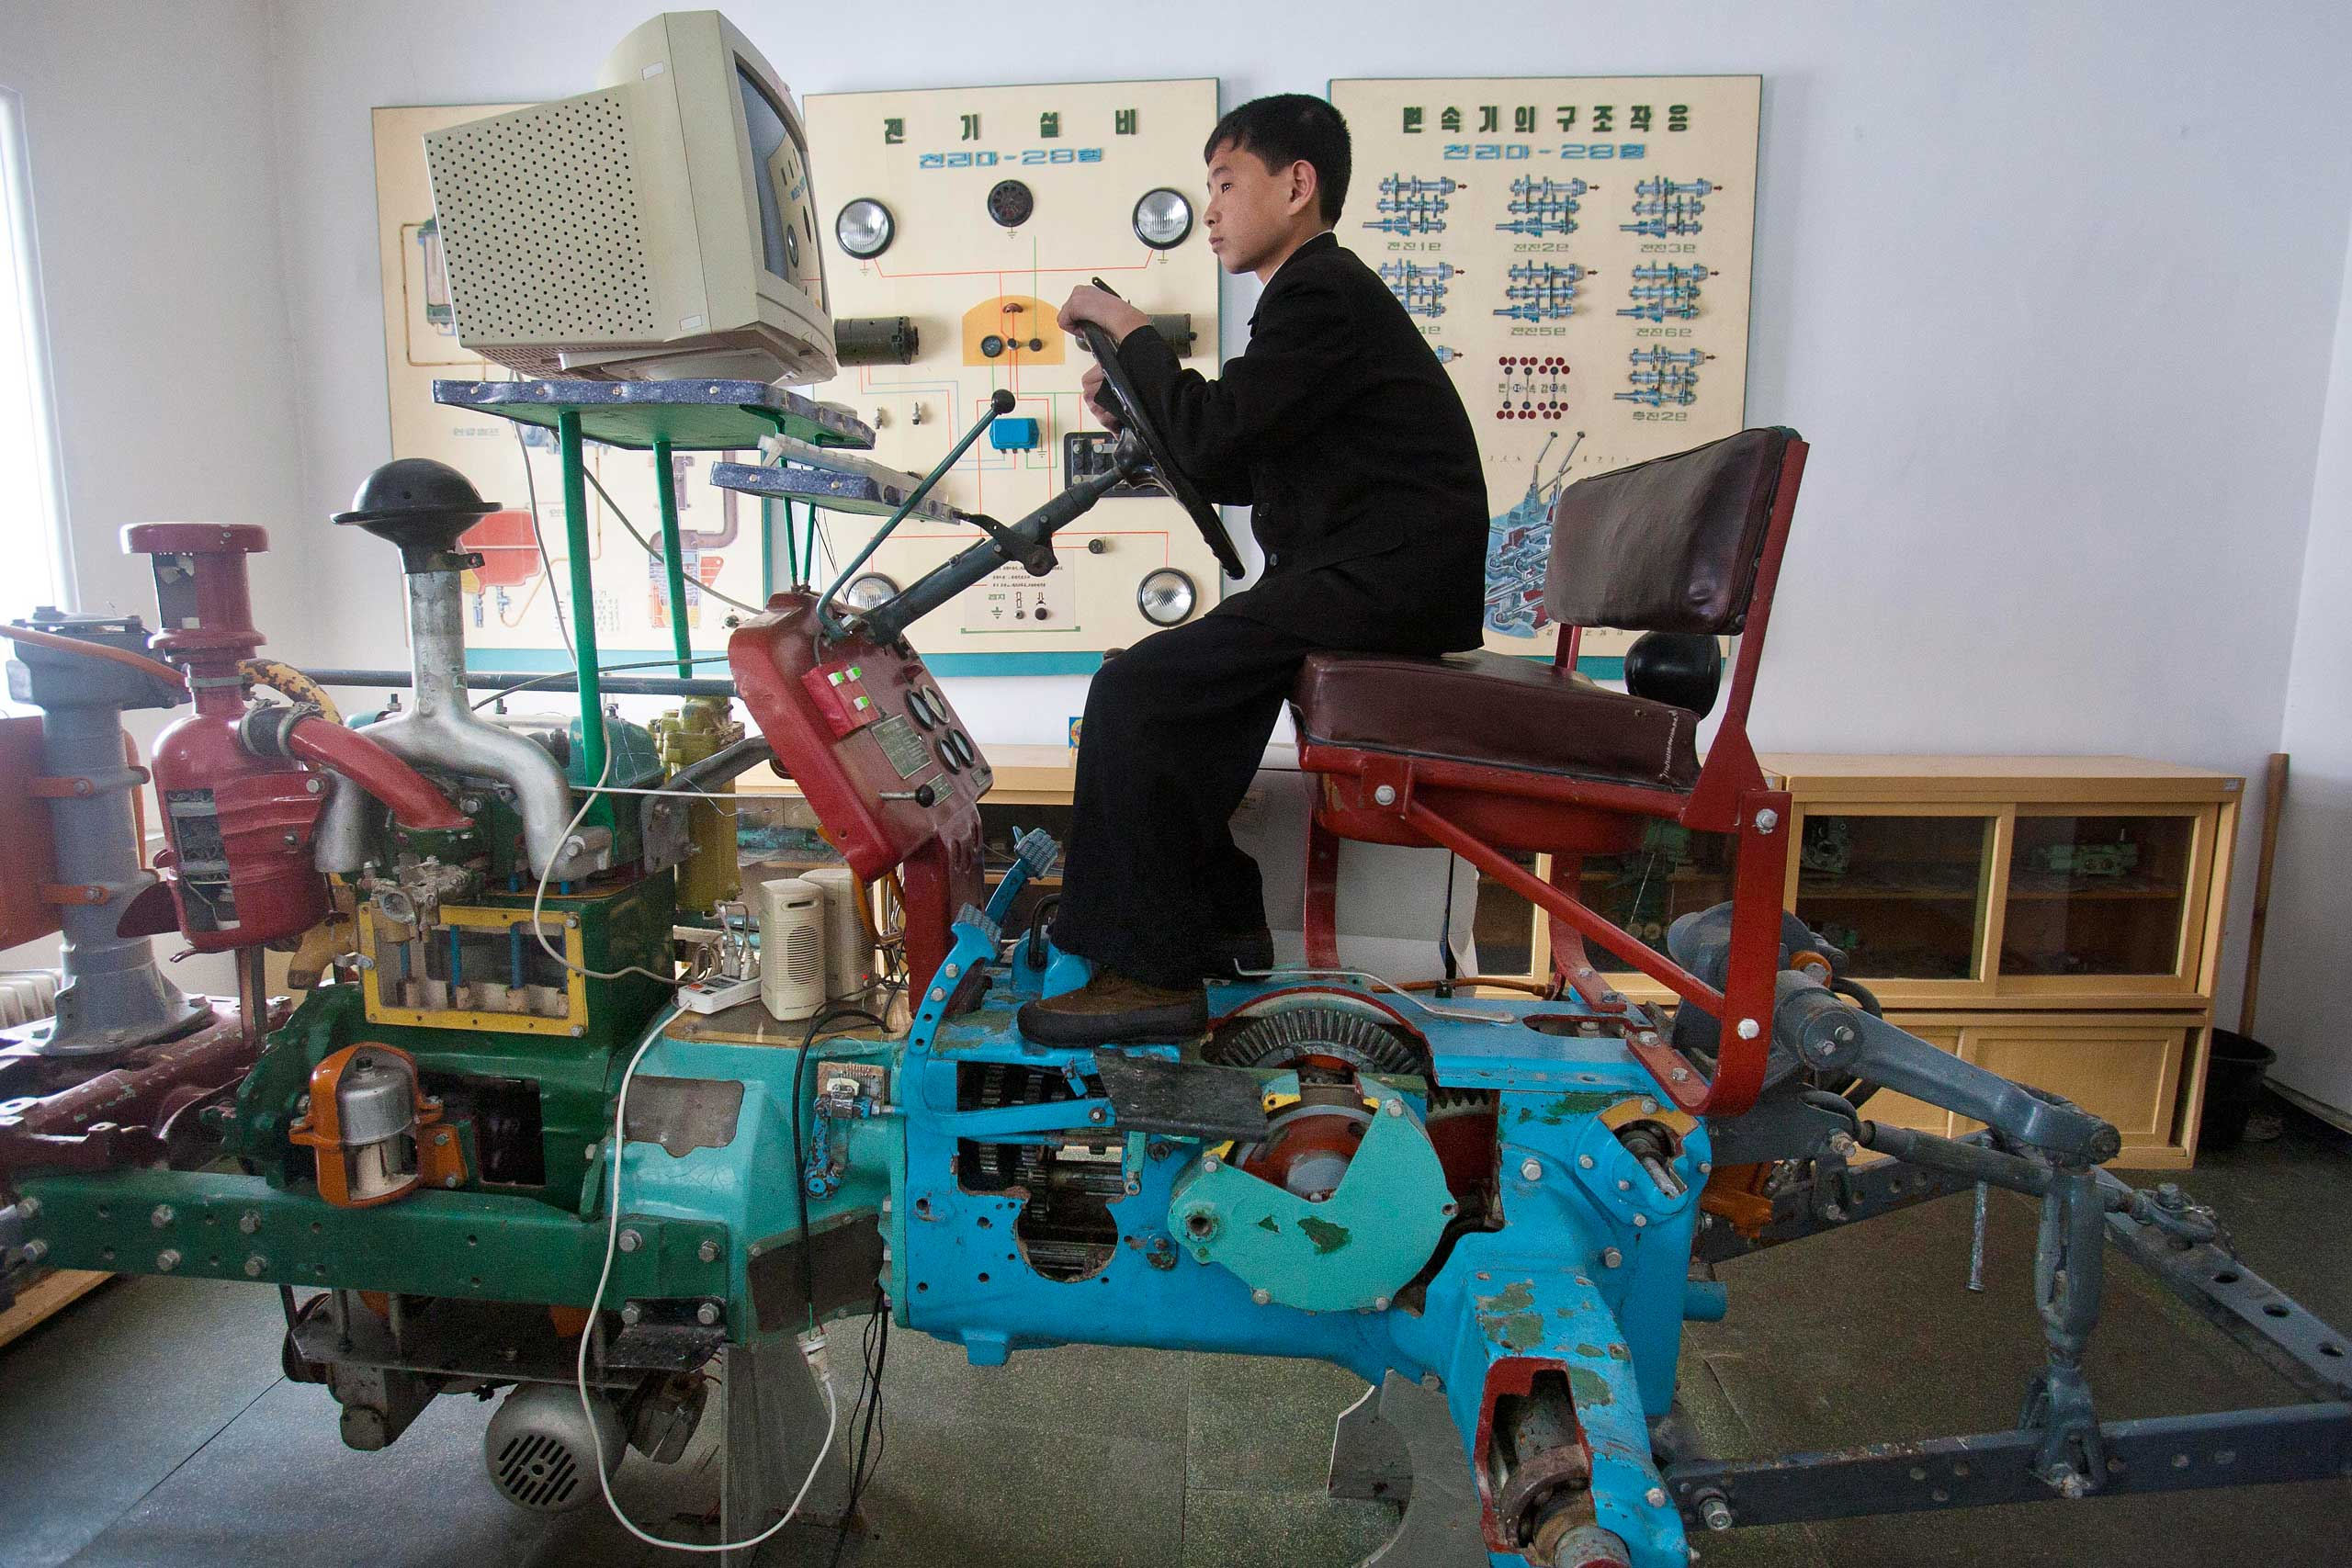 April 3, 2012. A North Korean student learns to drive a tractor on a computerized driving simulator at the Samjiyon Schoolchildren's Palace in Samjiyon, North Korea.